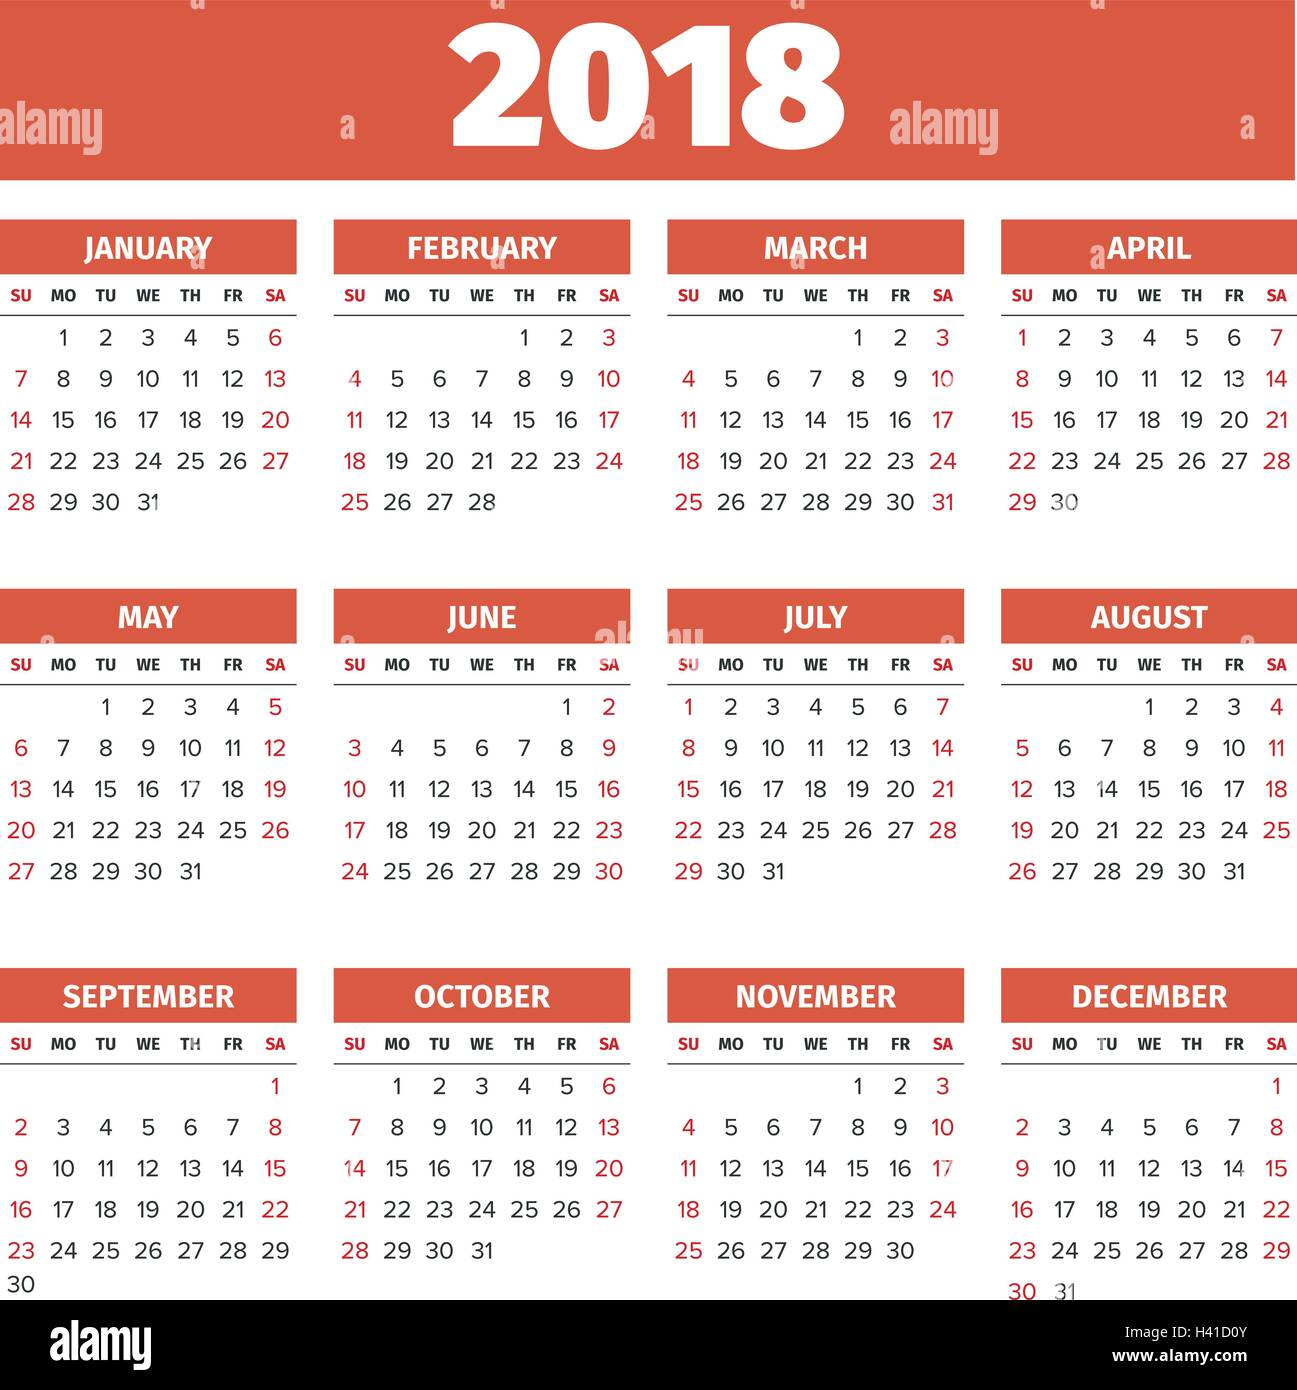 yearly calendar for 2018